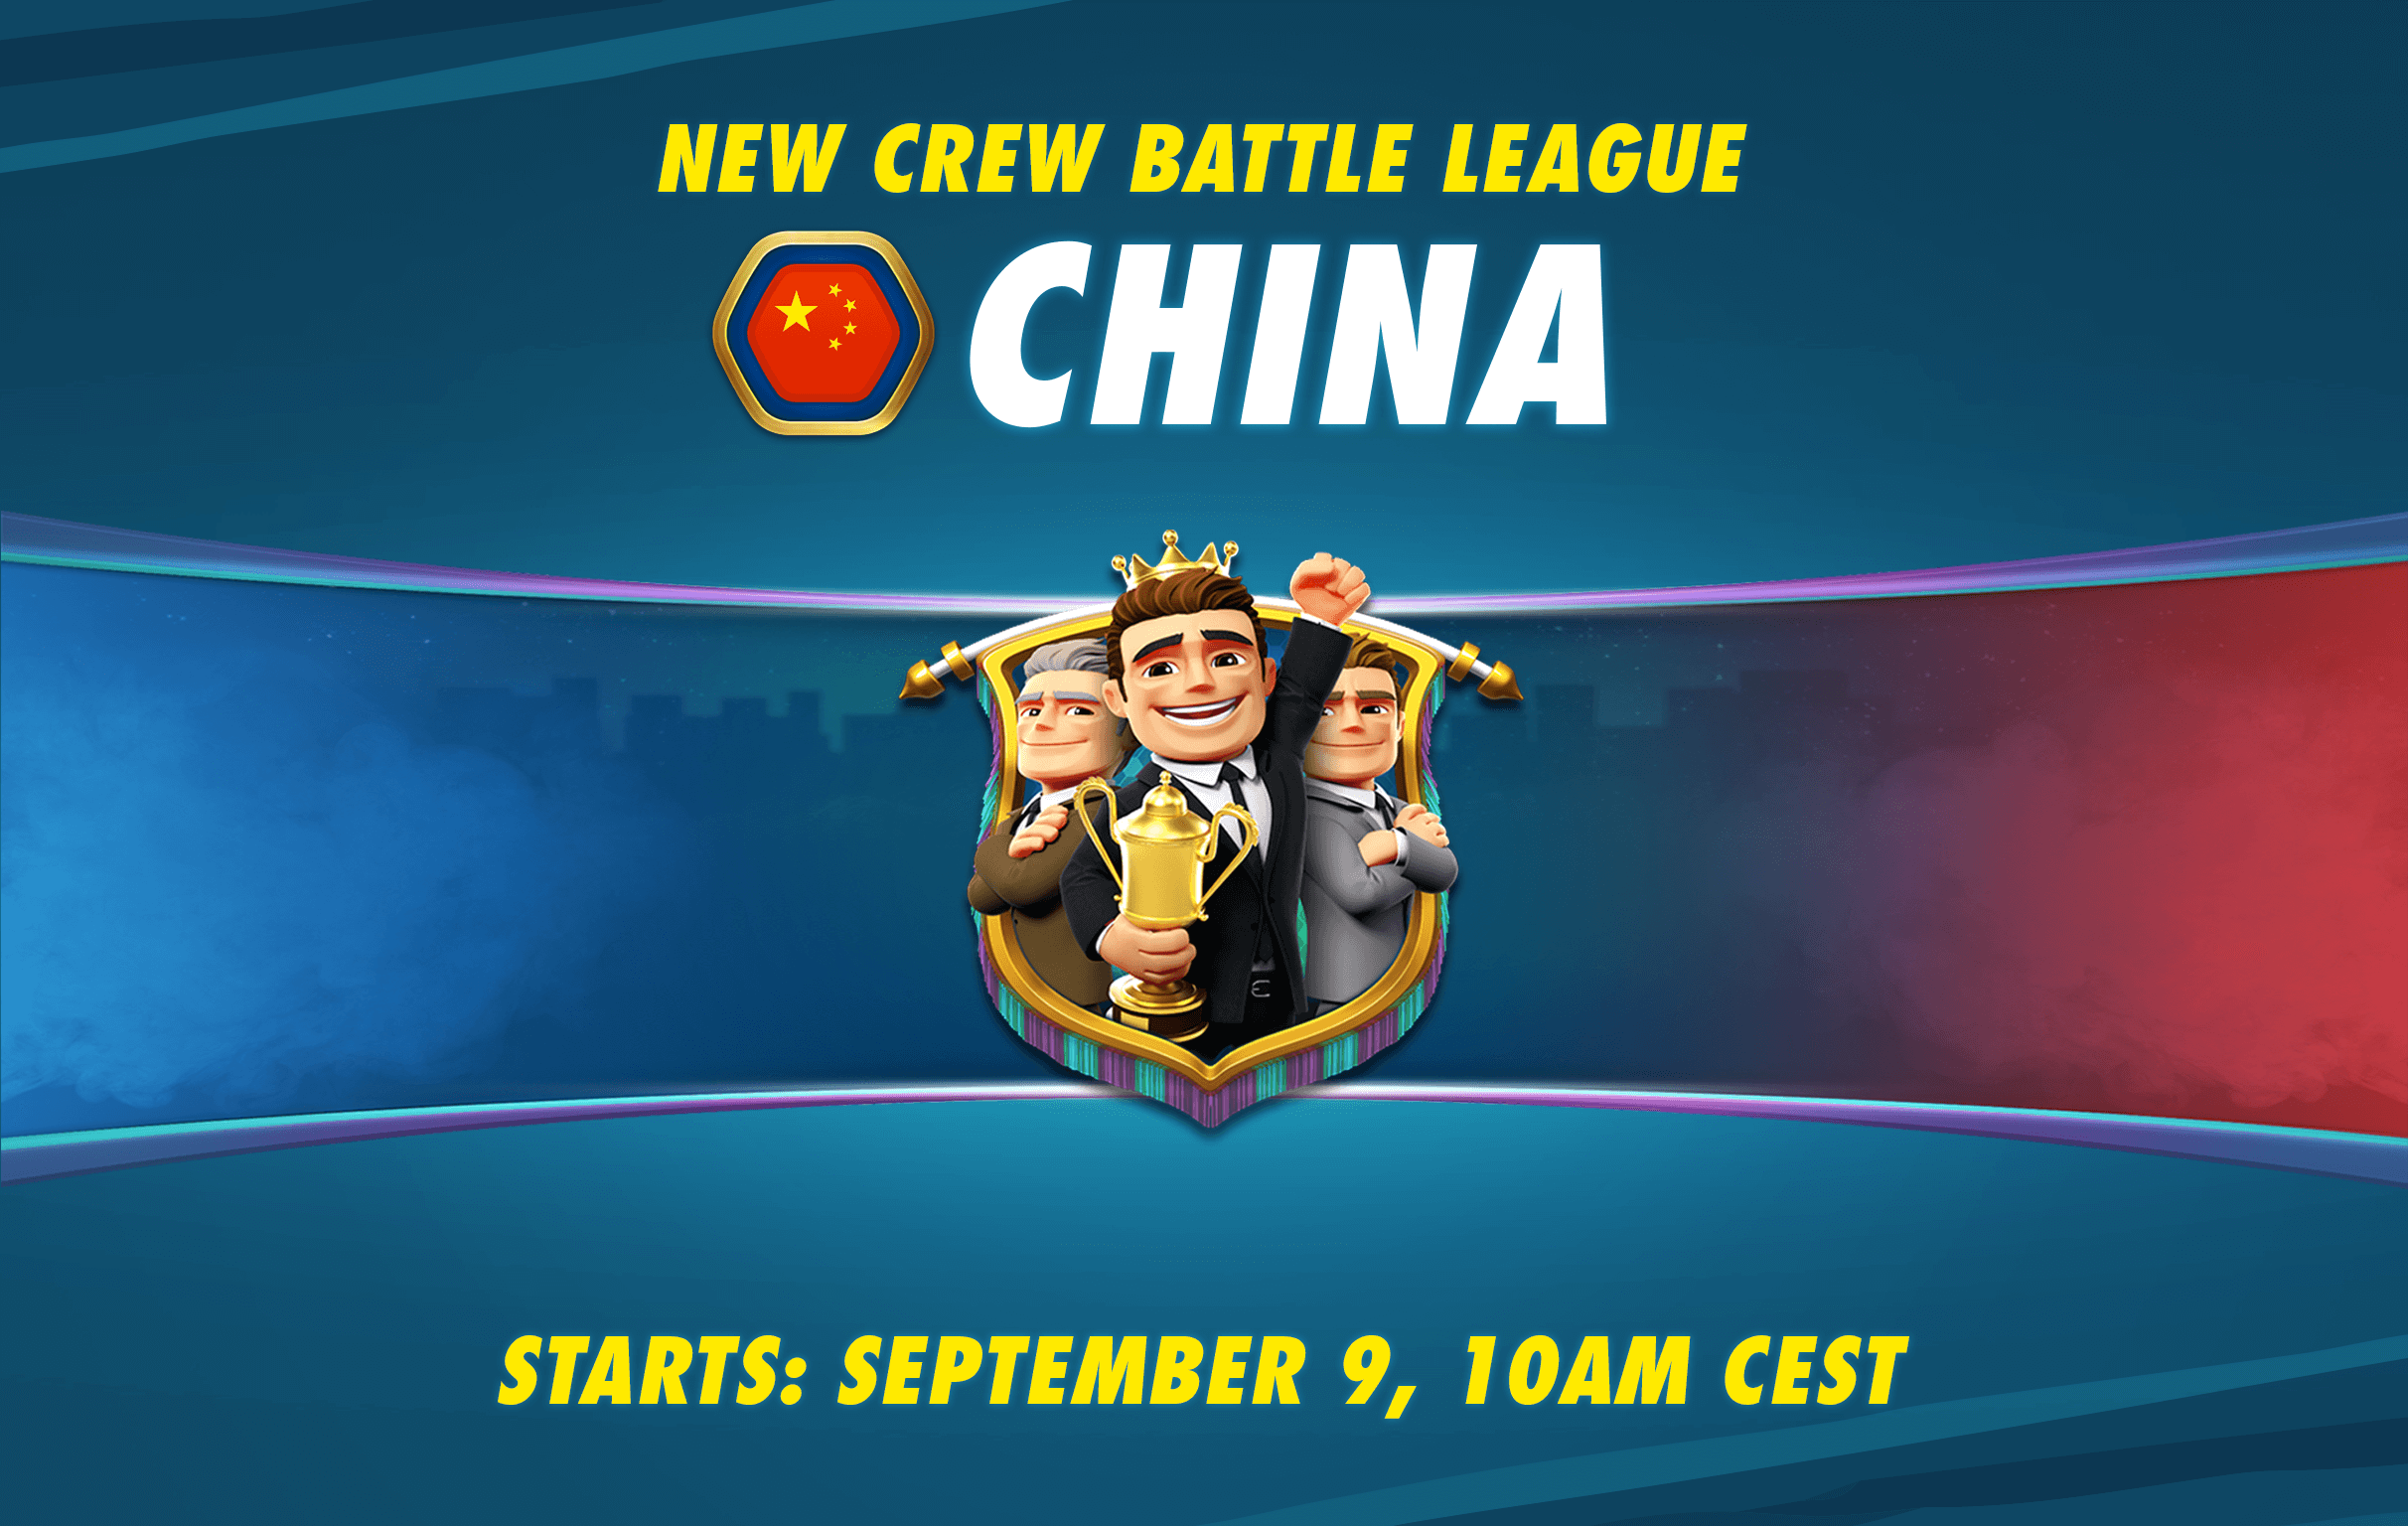 CP_Crew Battle League_CHINA.png